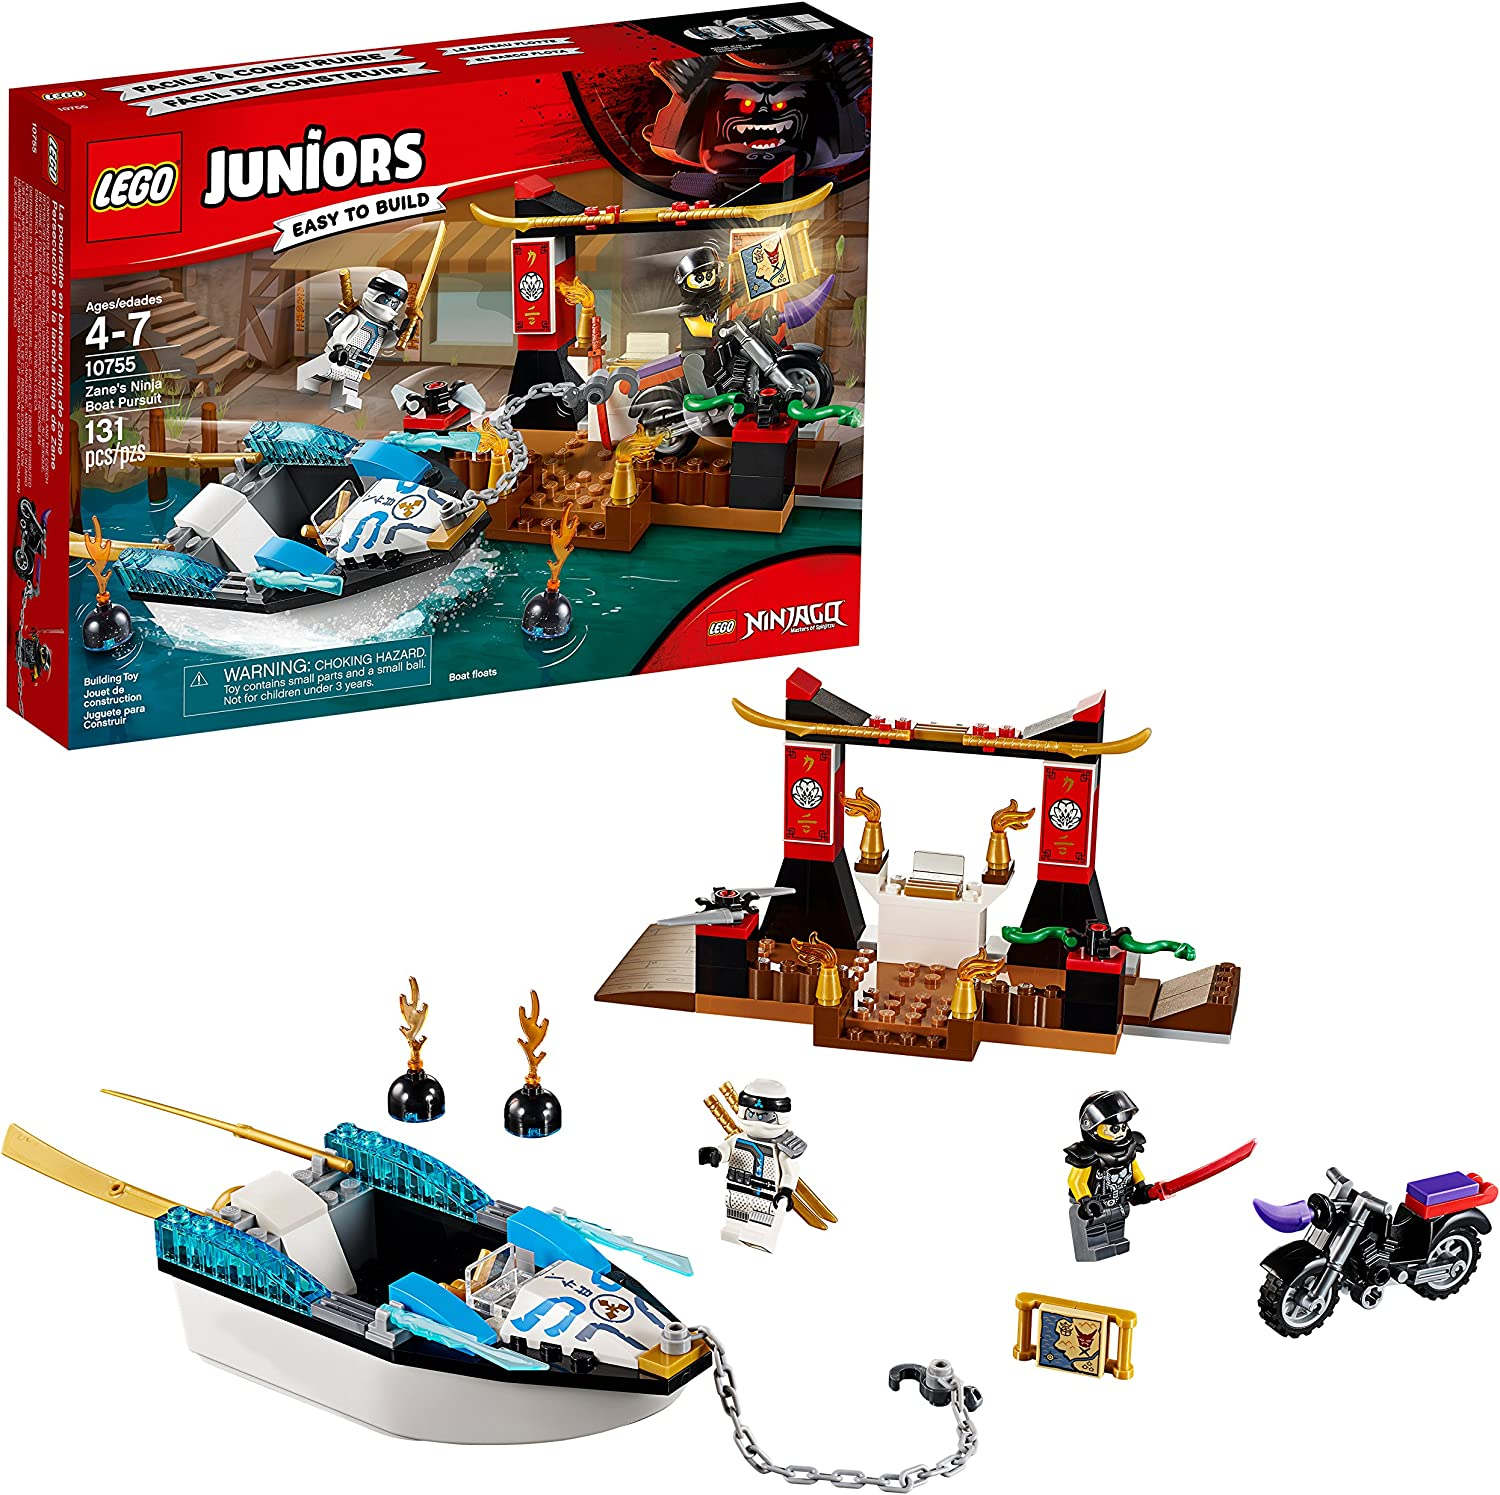 LEGO Juniors/4+ Zane's Ninja Boat Pursuit 10755 Building Kit (131 Piece)